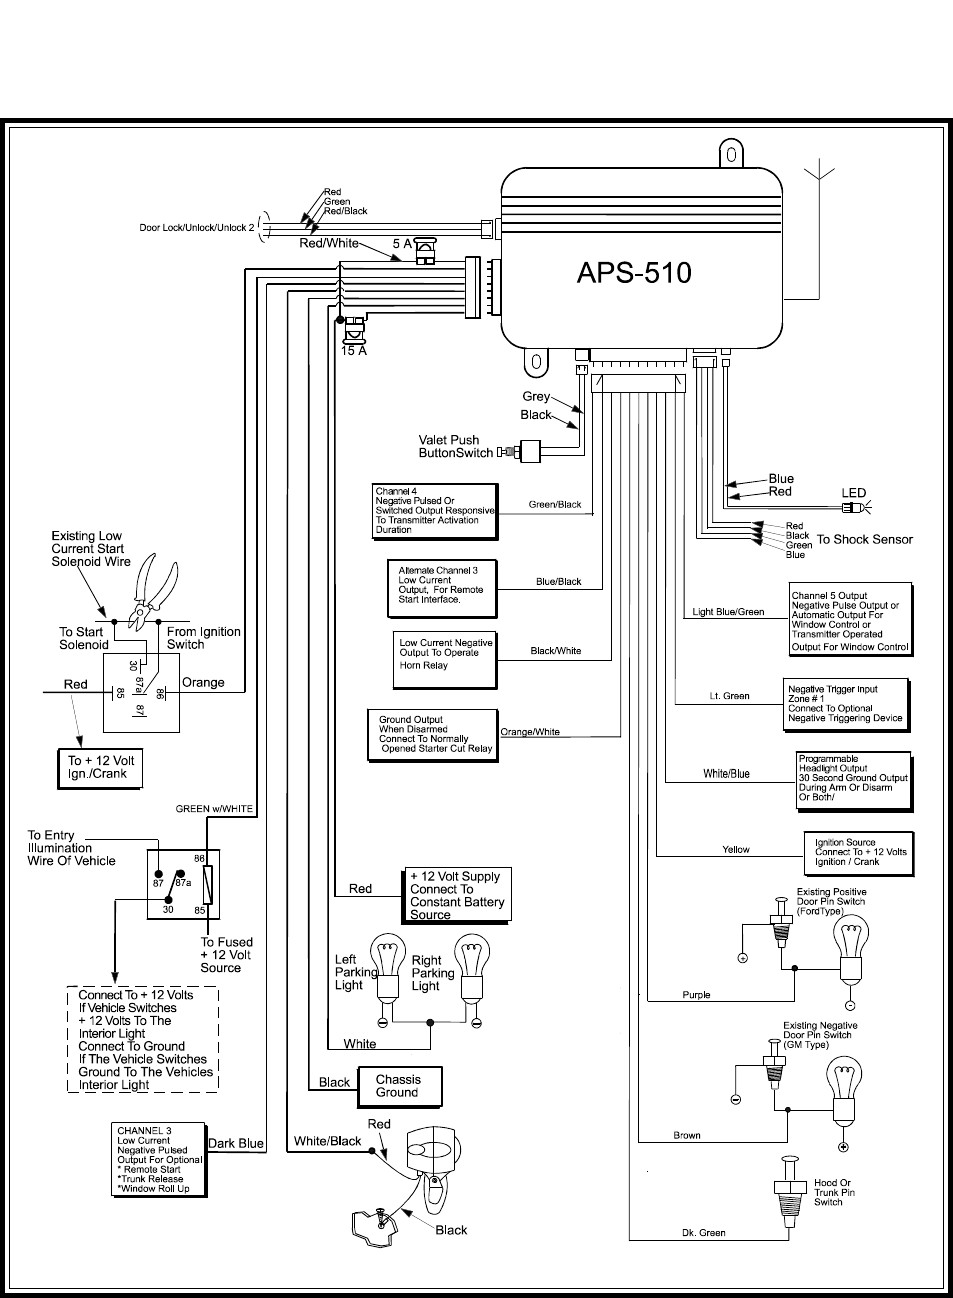 hight resolution of viper 5902 wiring diagram wiring diagram schematics viper 211hv wiring diagram viper car alarm wiring diagram manual 3015